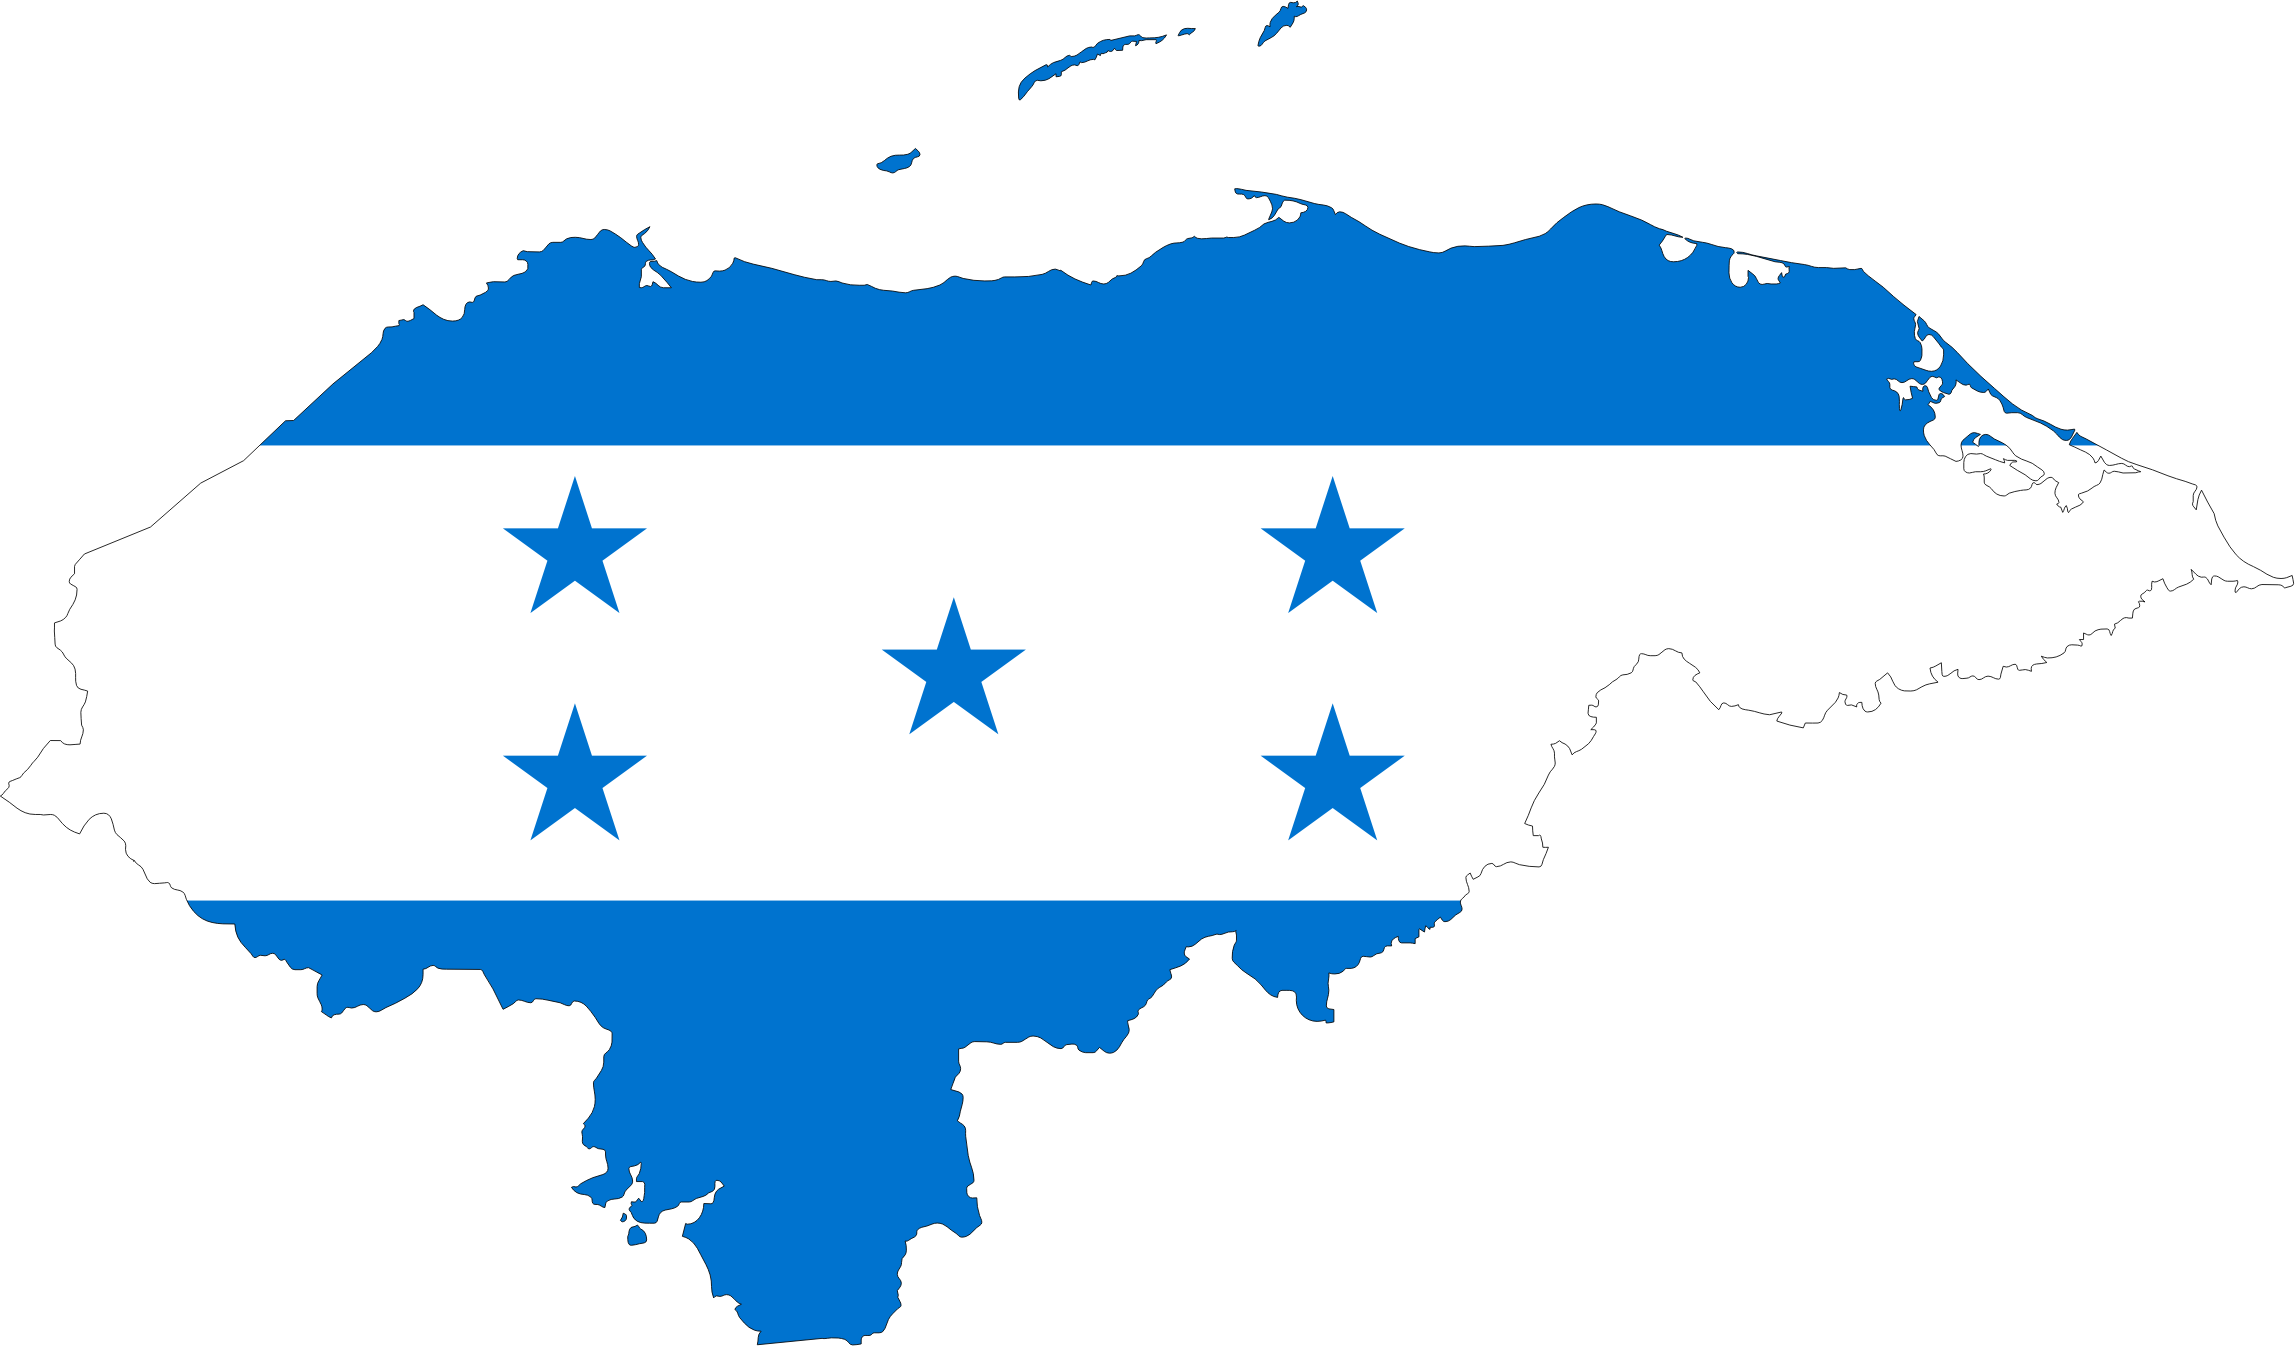 Clipart Honduras Map Flag - Hondurus map